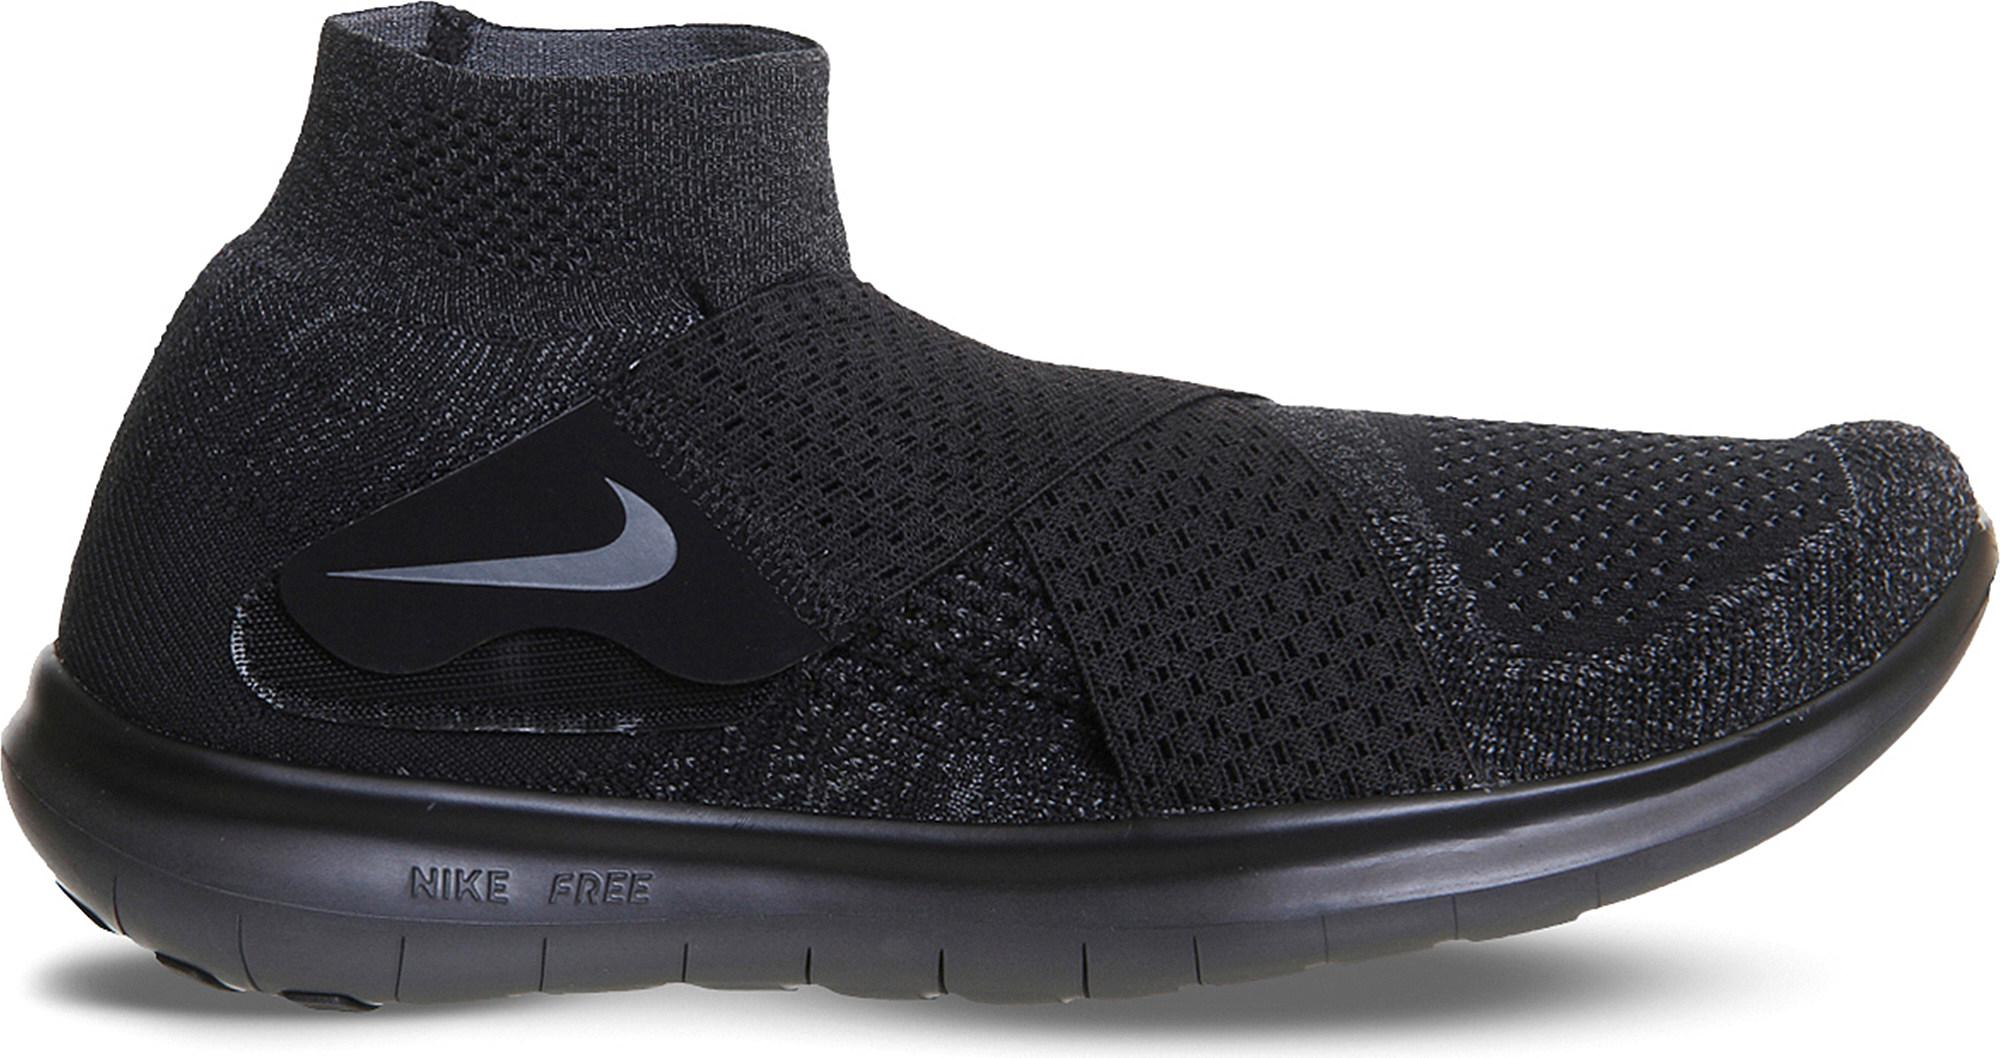 218bc9890938 ... closeout lyst nike free run motion flyknit trainers in black for men  9a610 d4112